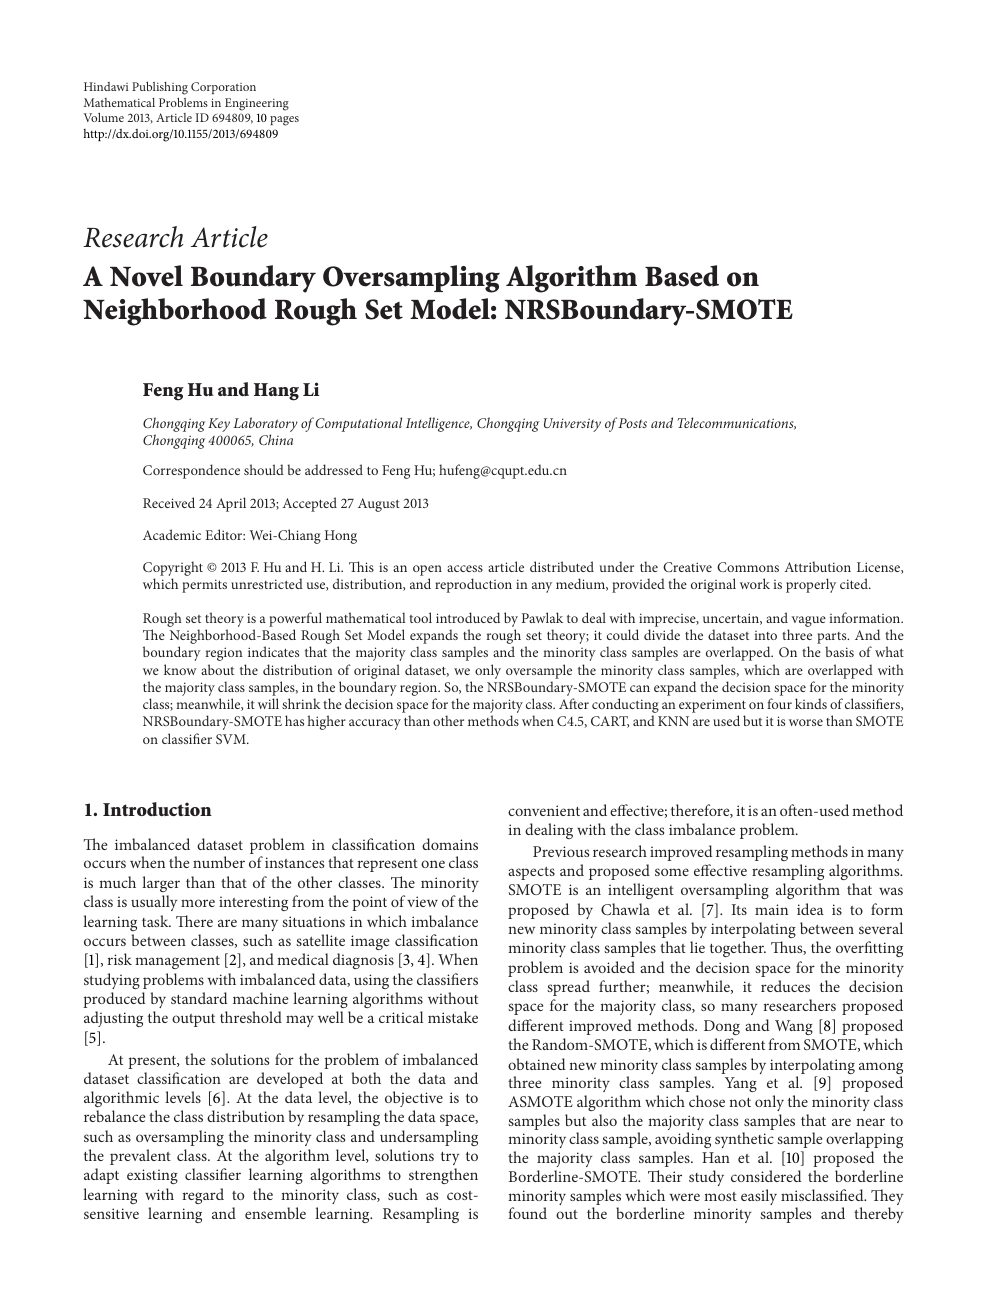 A Novel Boundary Oversampling Algorithm Based on